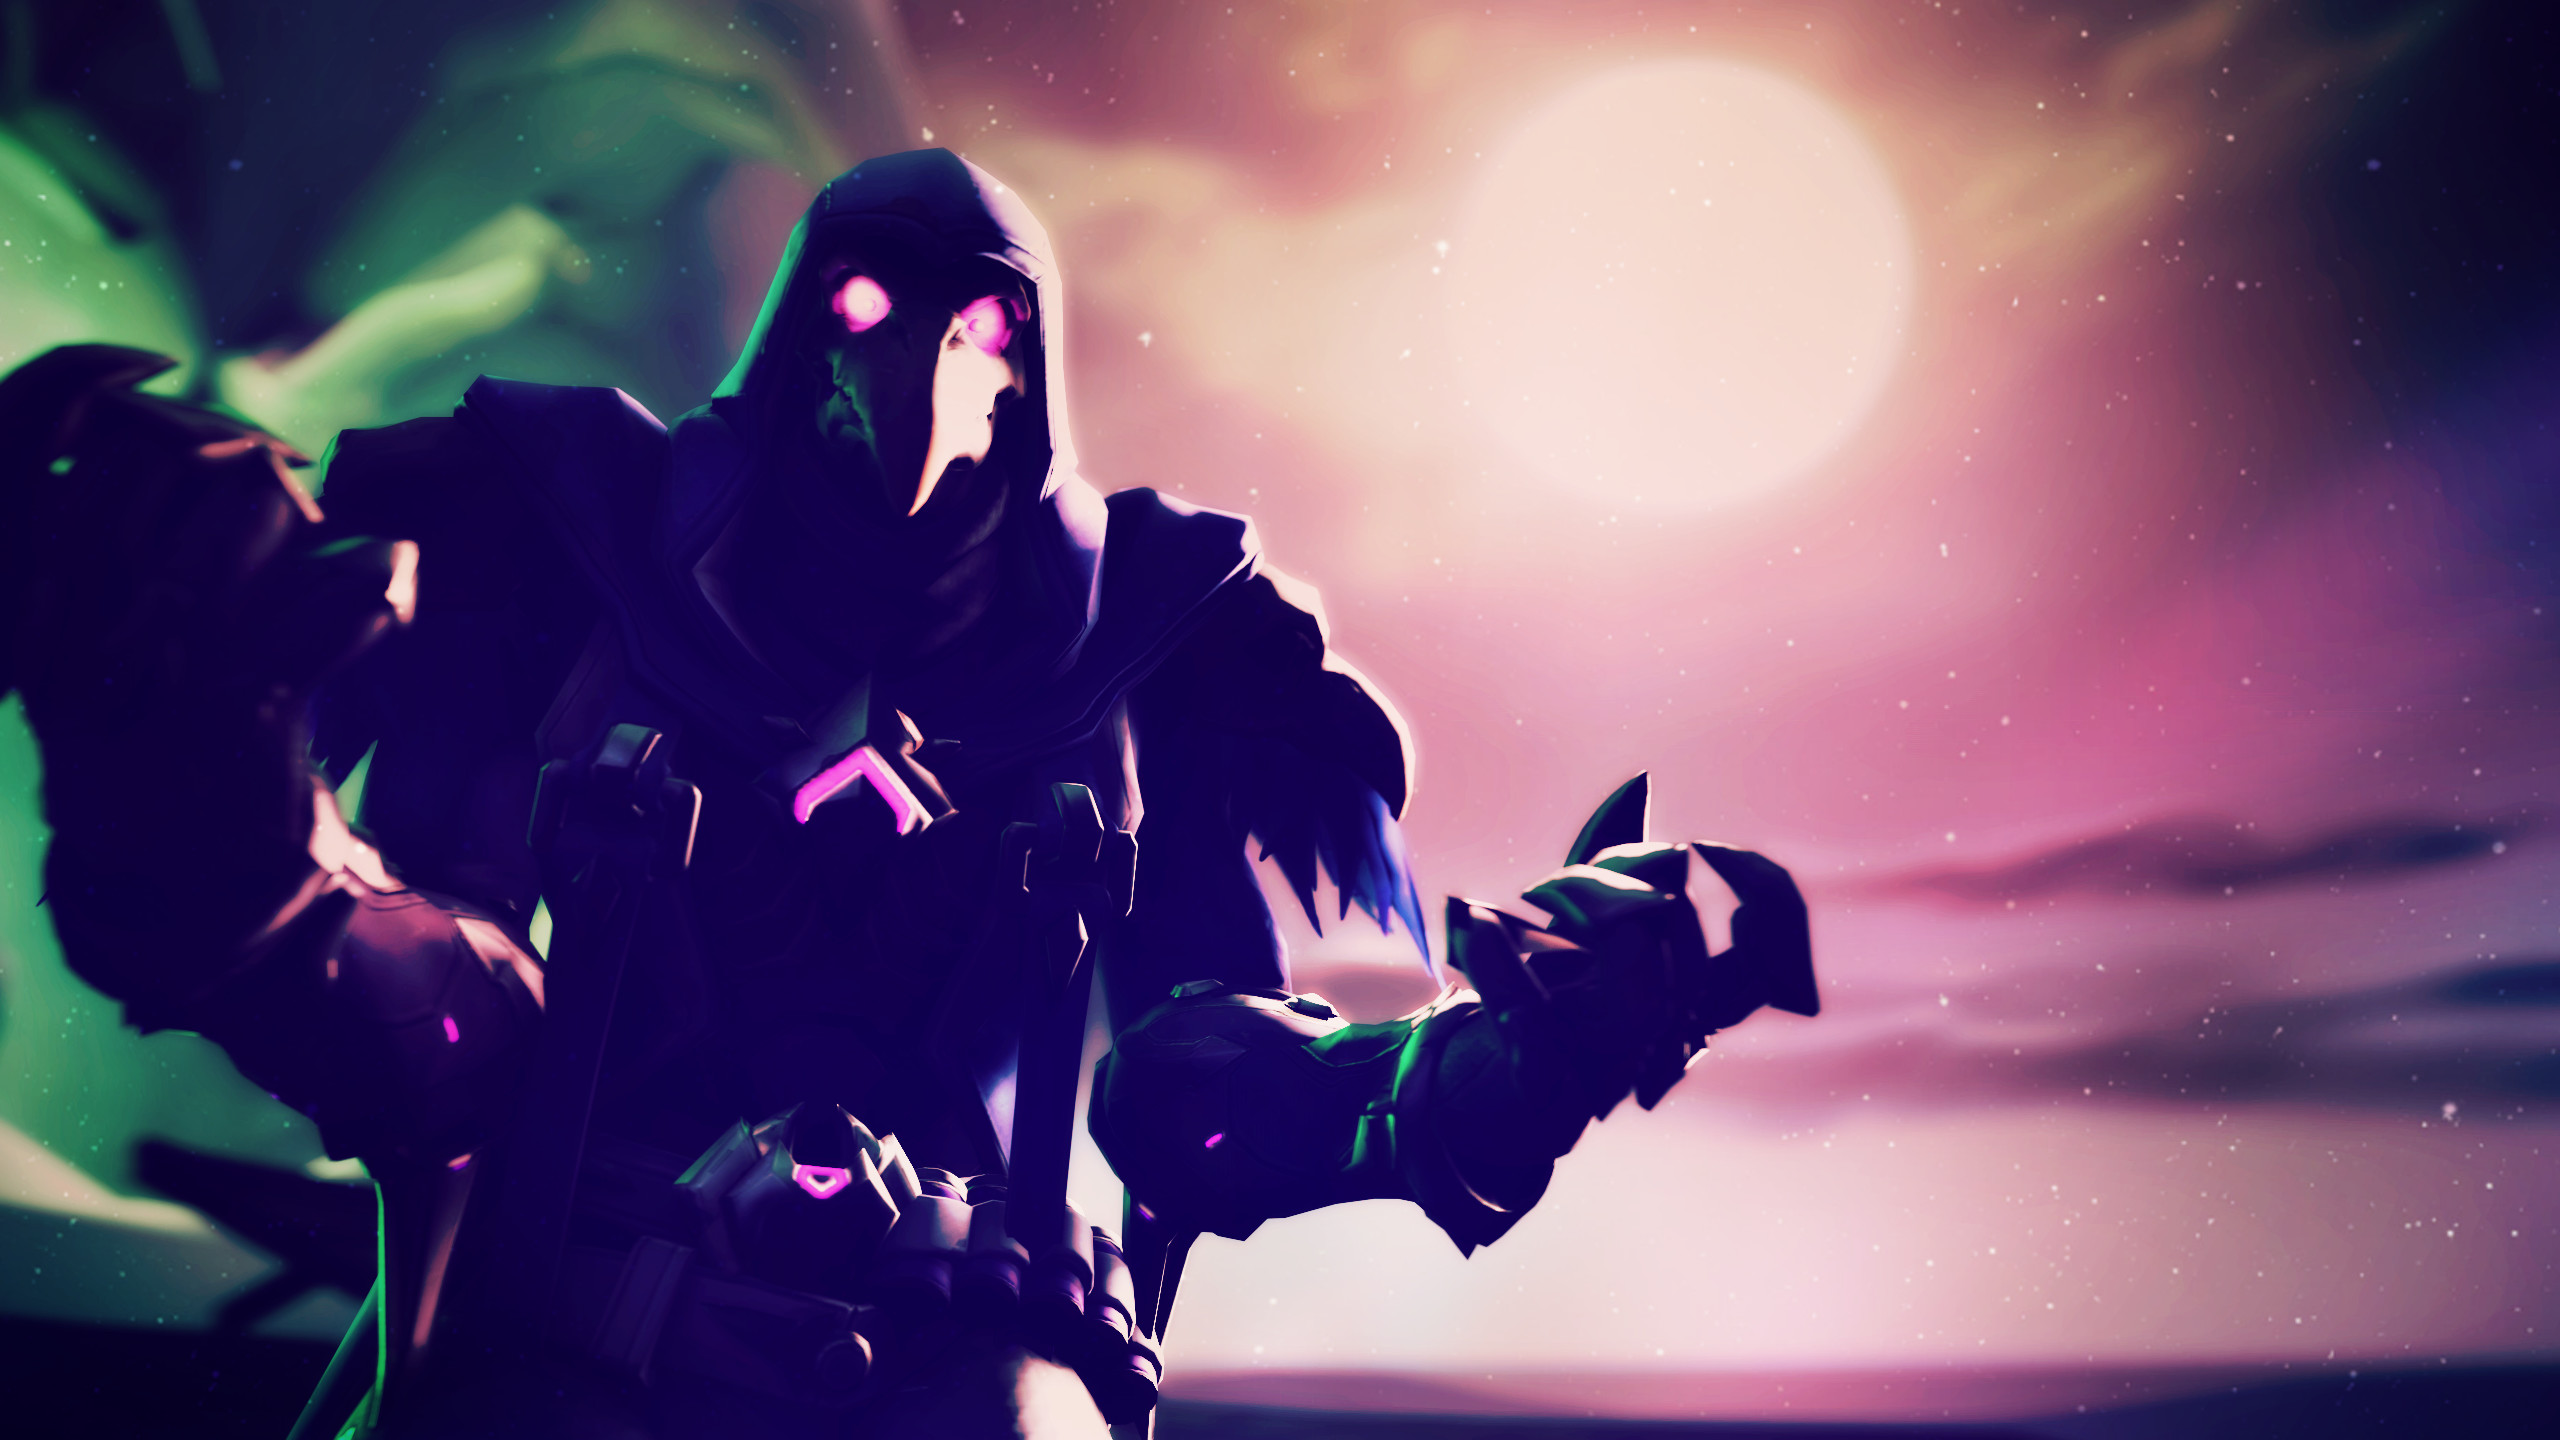 Overwatch – Plague Doctor by SpookySnood Overwatch – Plague Doctor by  SpookySnood